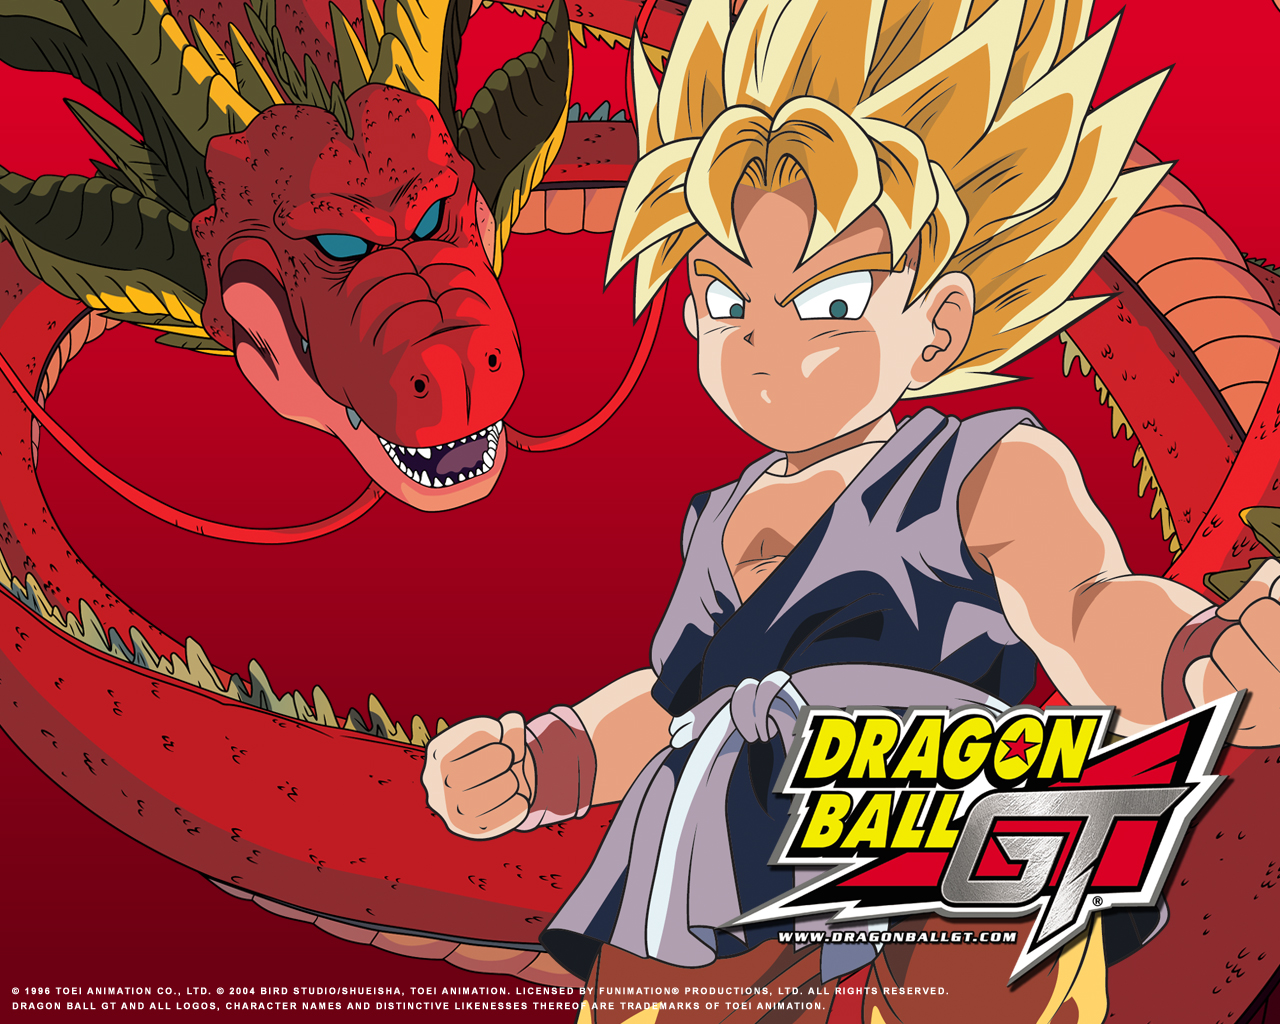 Wallpapers HD Dragon Ball Gt Z Full HD Wallpapers 1280x1024